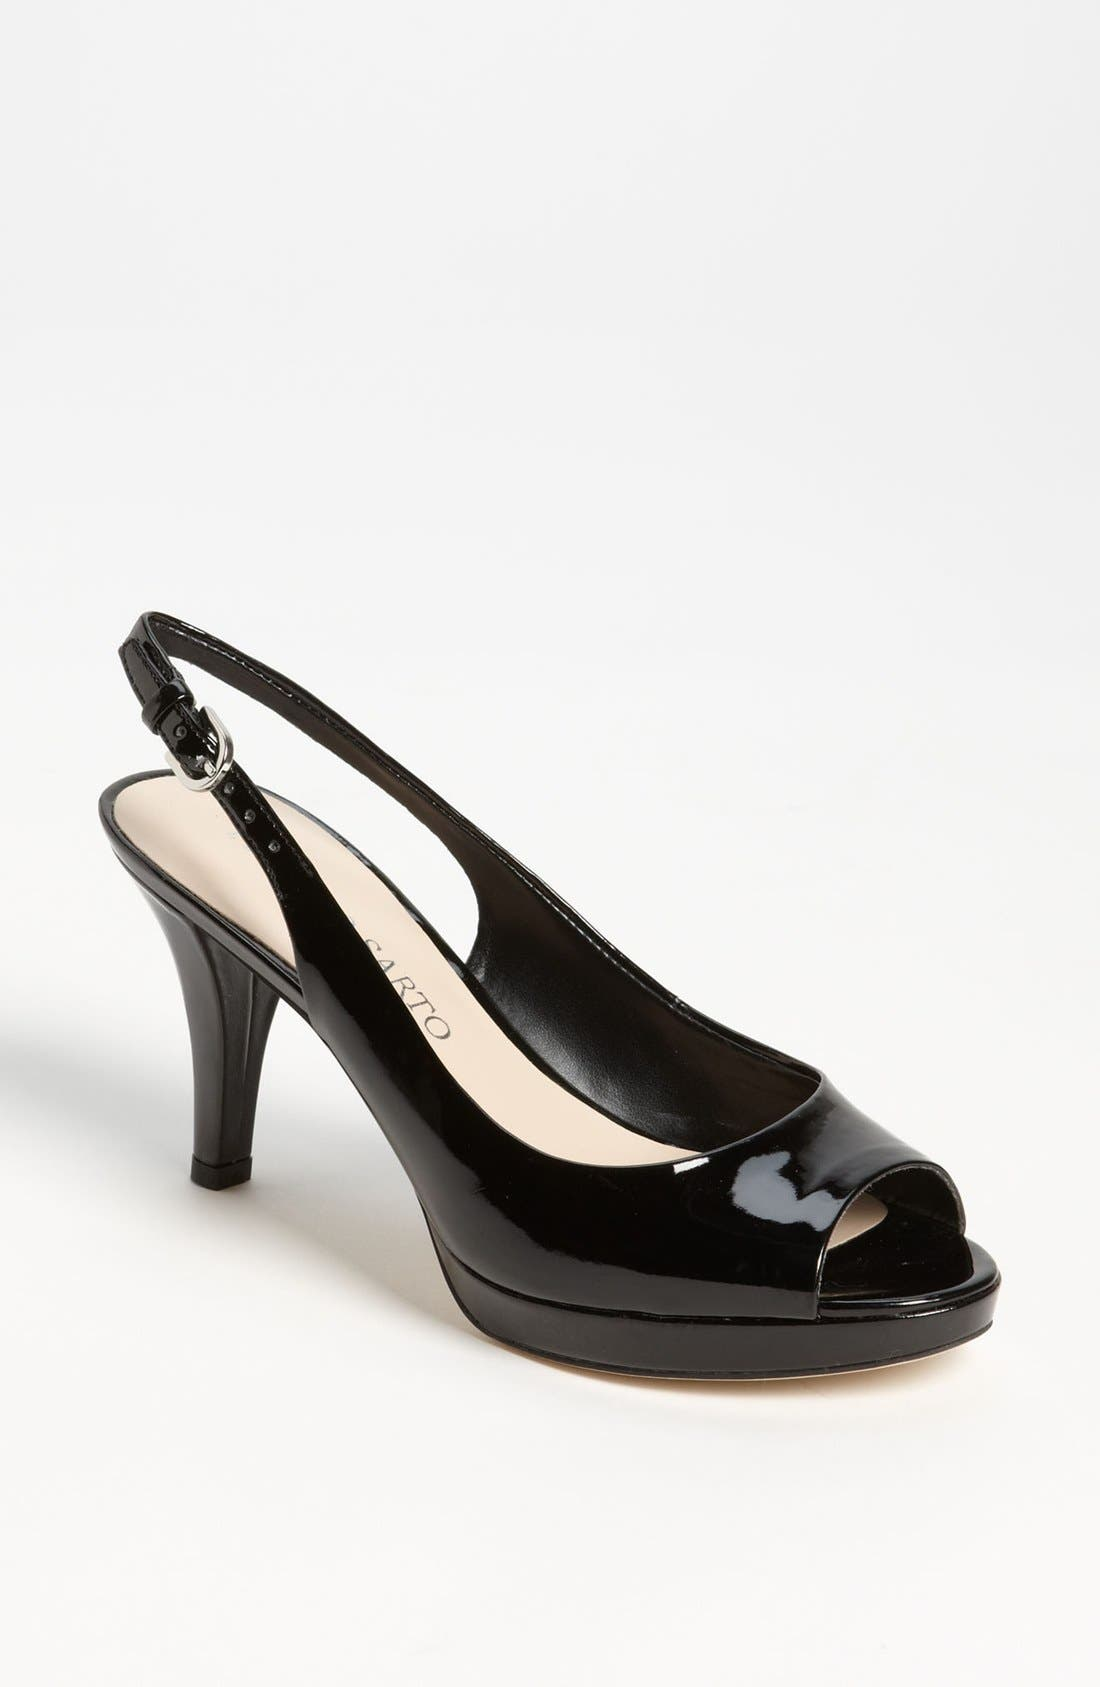 Alternate Image 1 Selected - Franco Sarto 'Prance' Peep Toe Pump